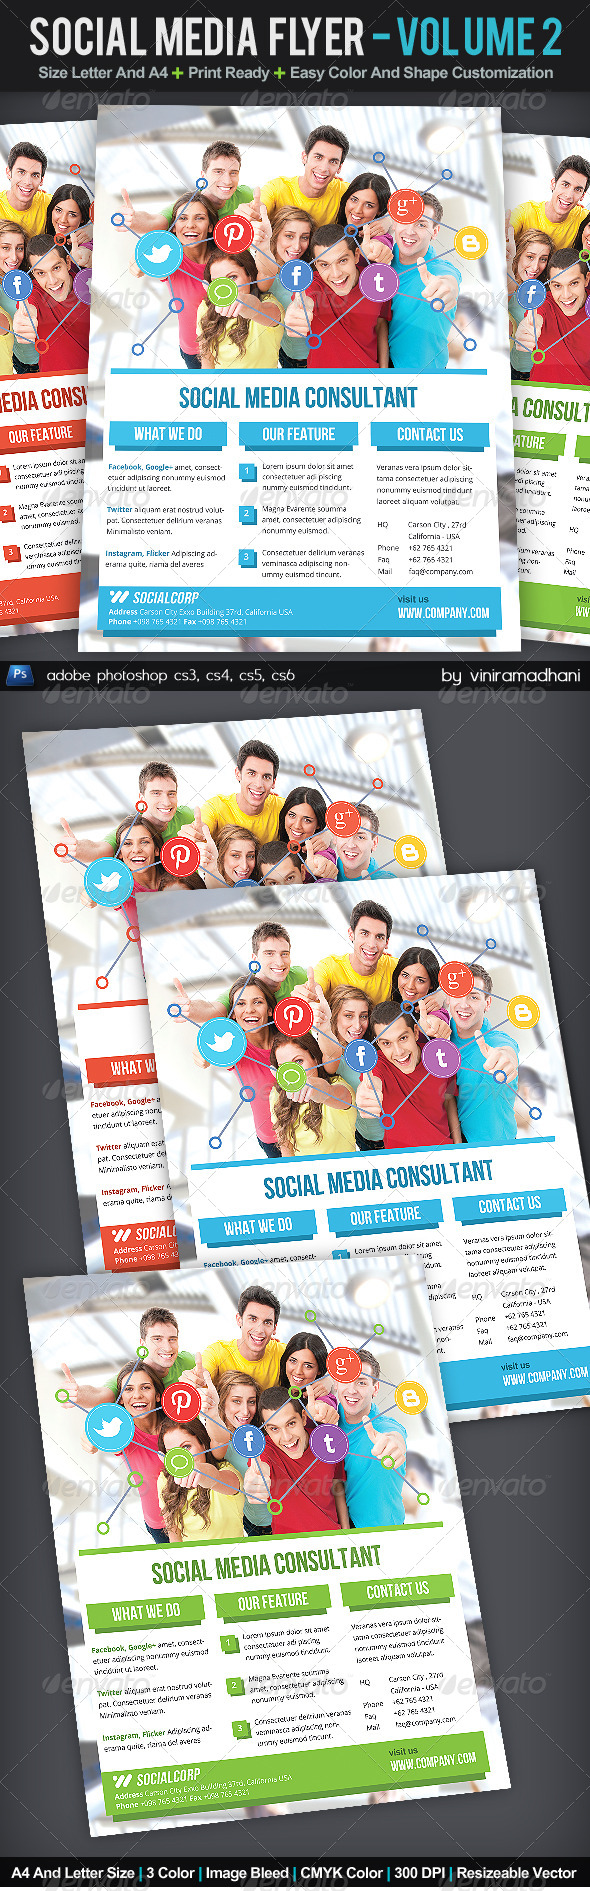 Social Media Flyer | Volume 2 - Corporate Flyers